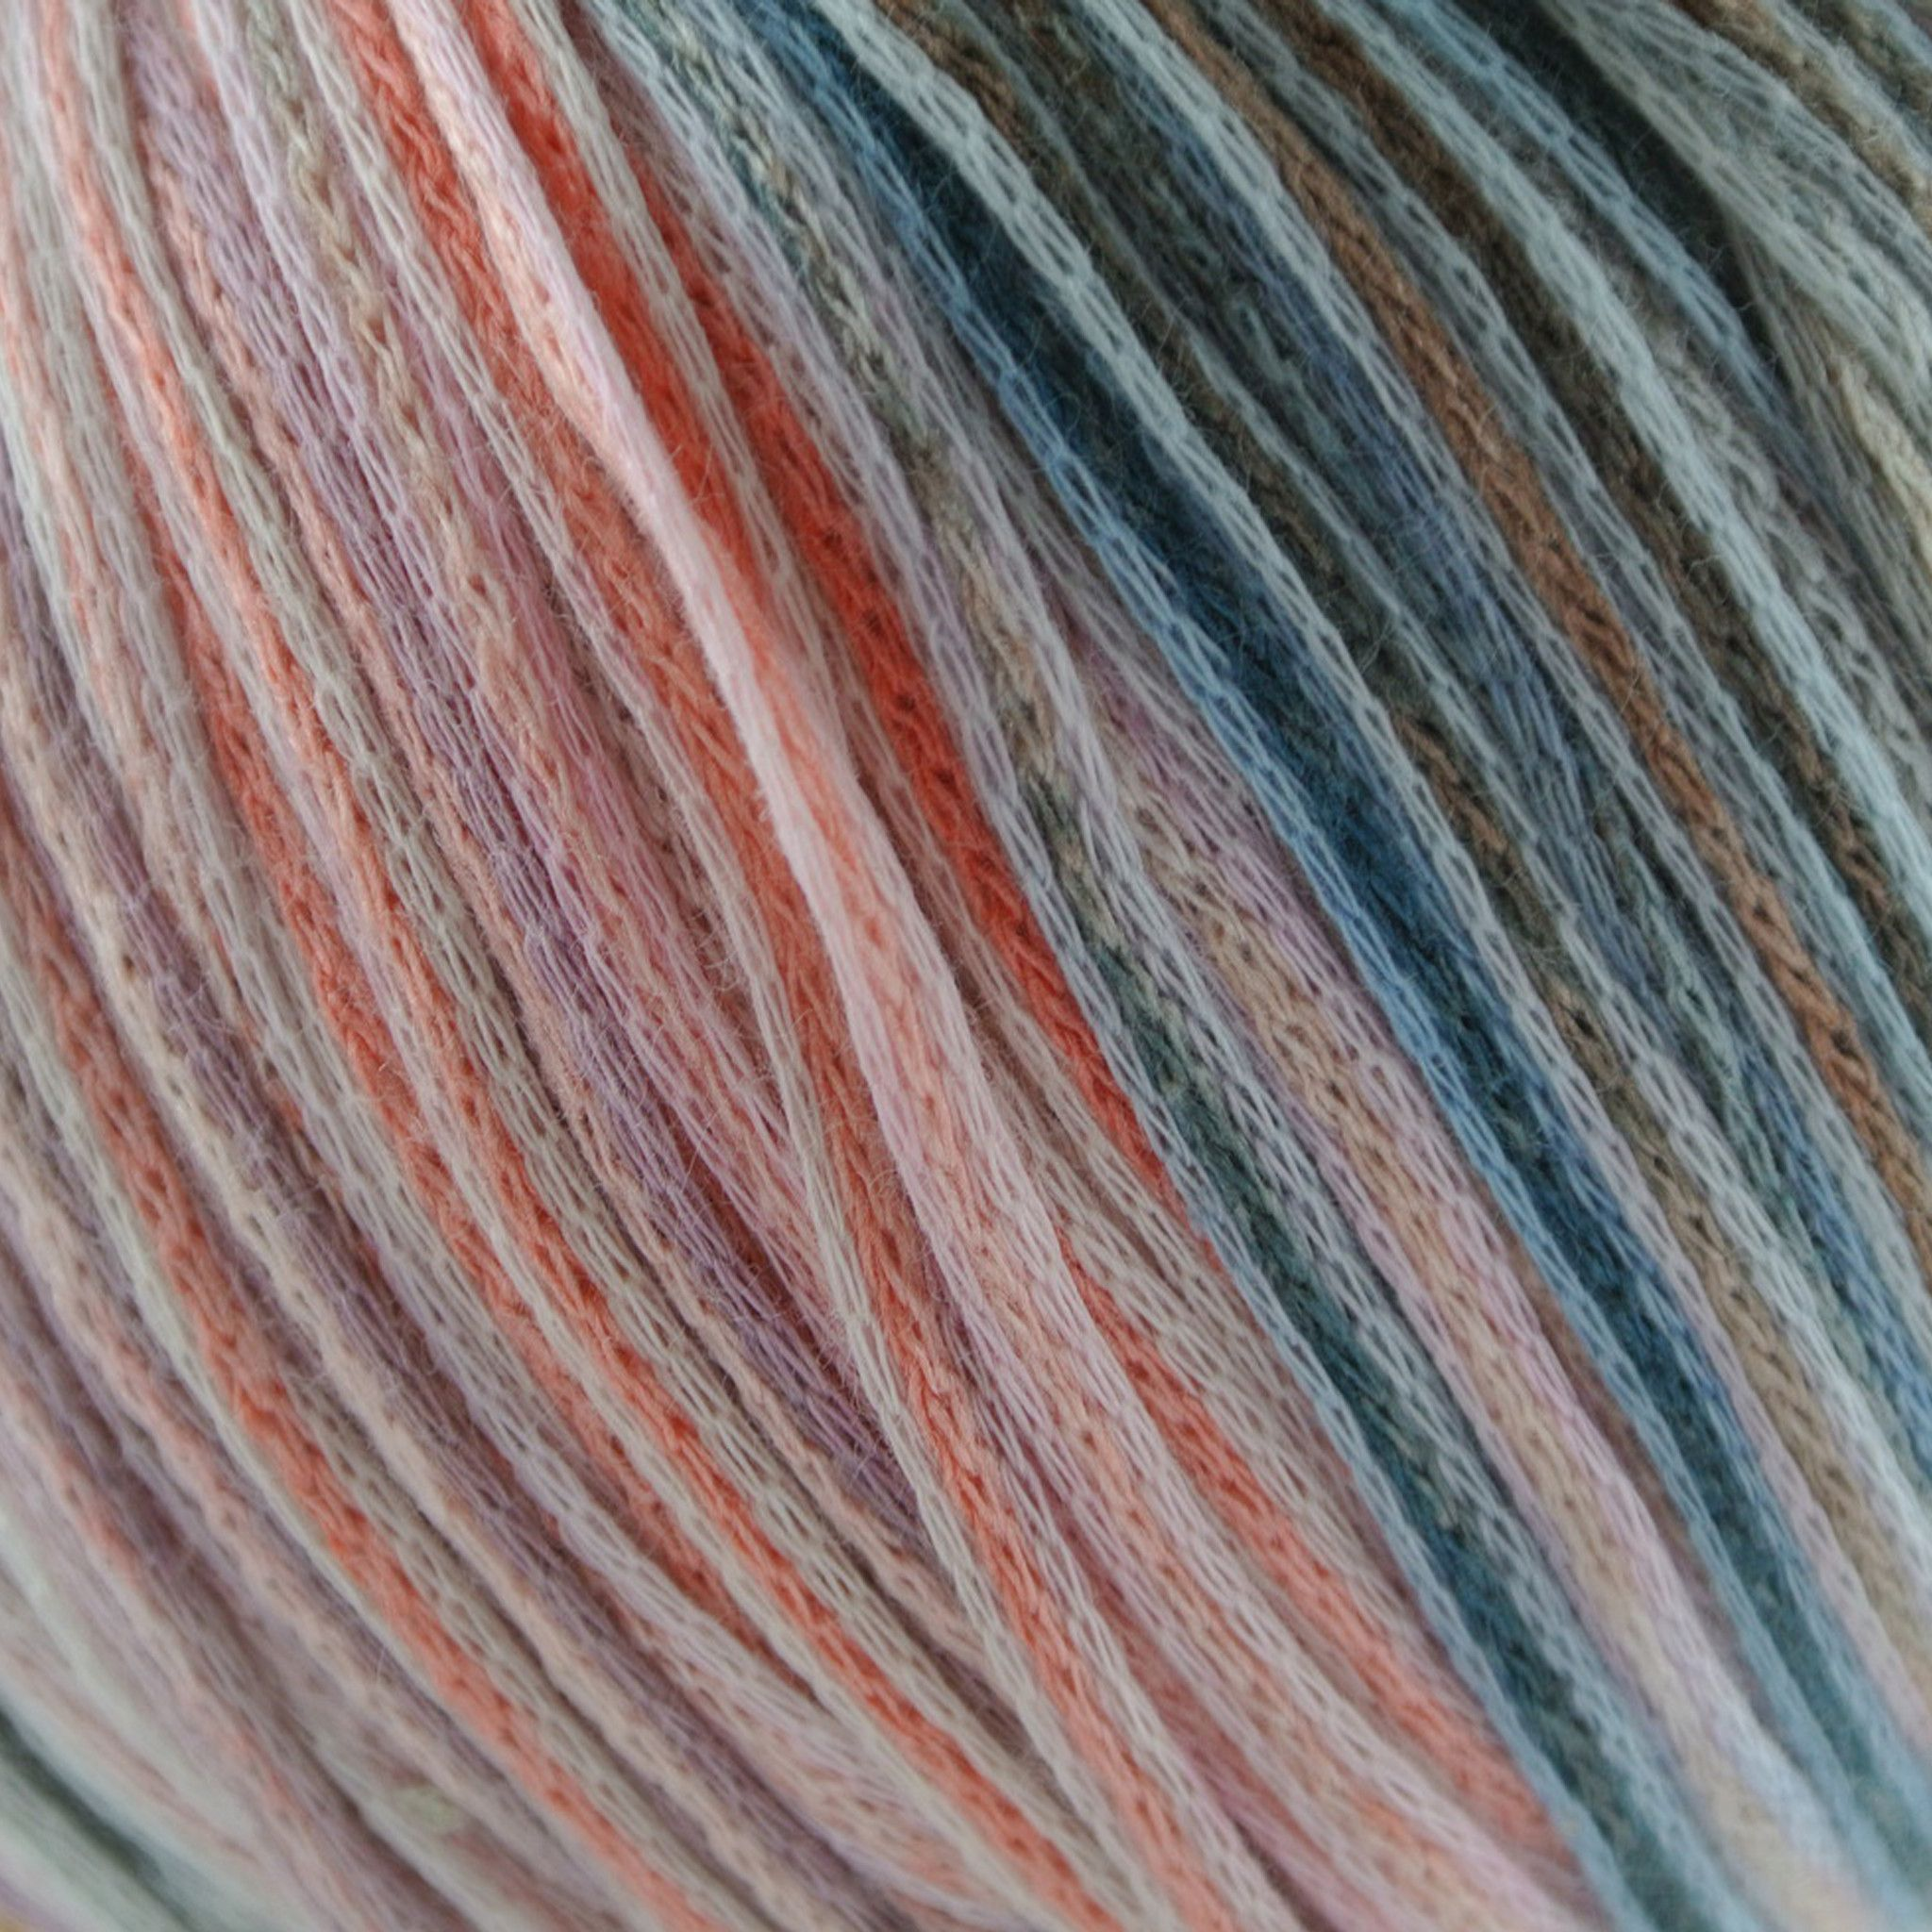 Queensland Collection Cairns Yarn #01 Sydney Swans